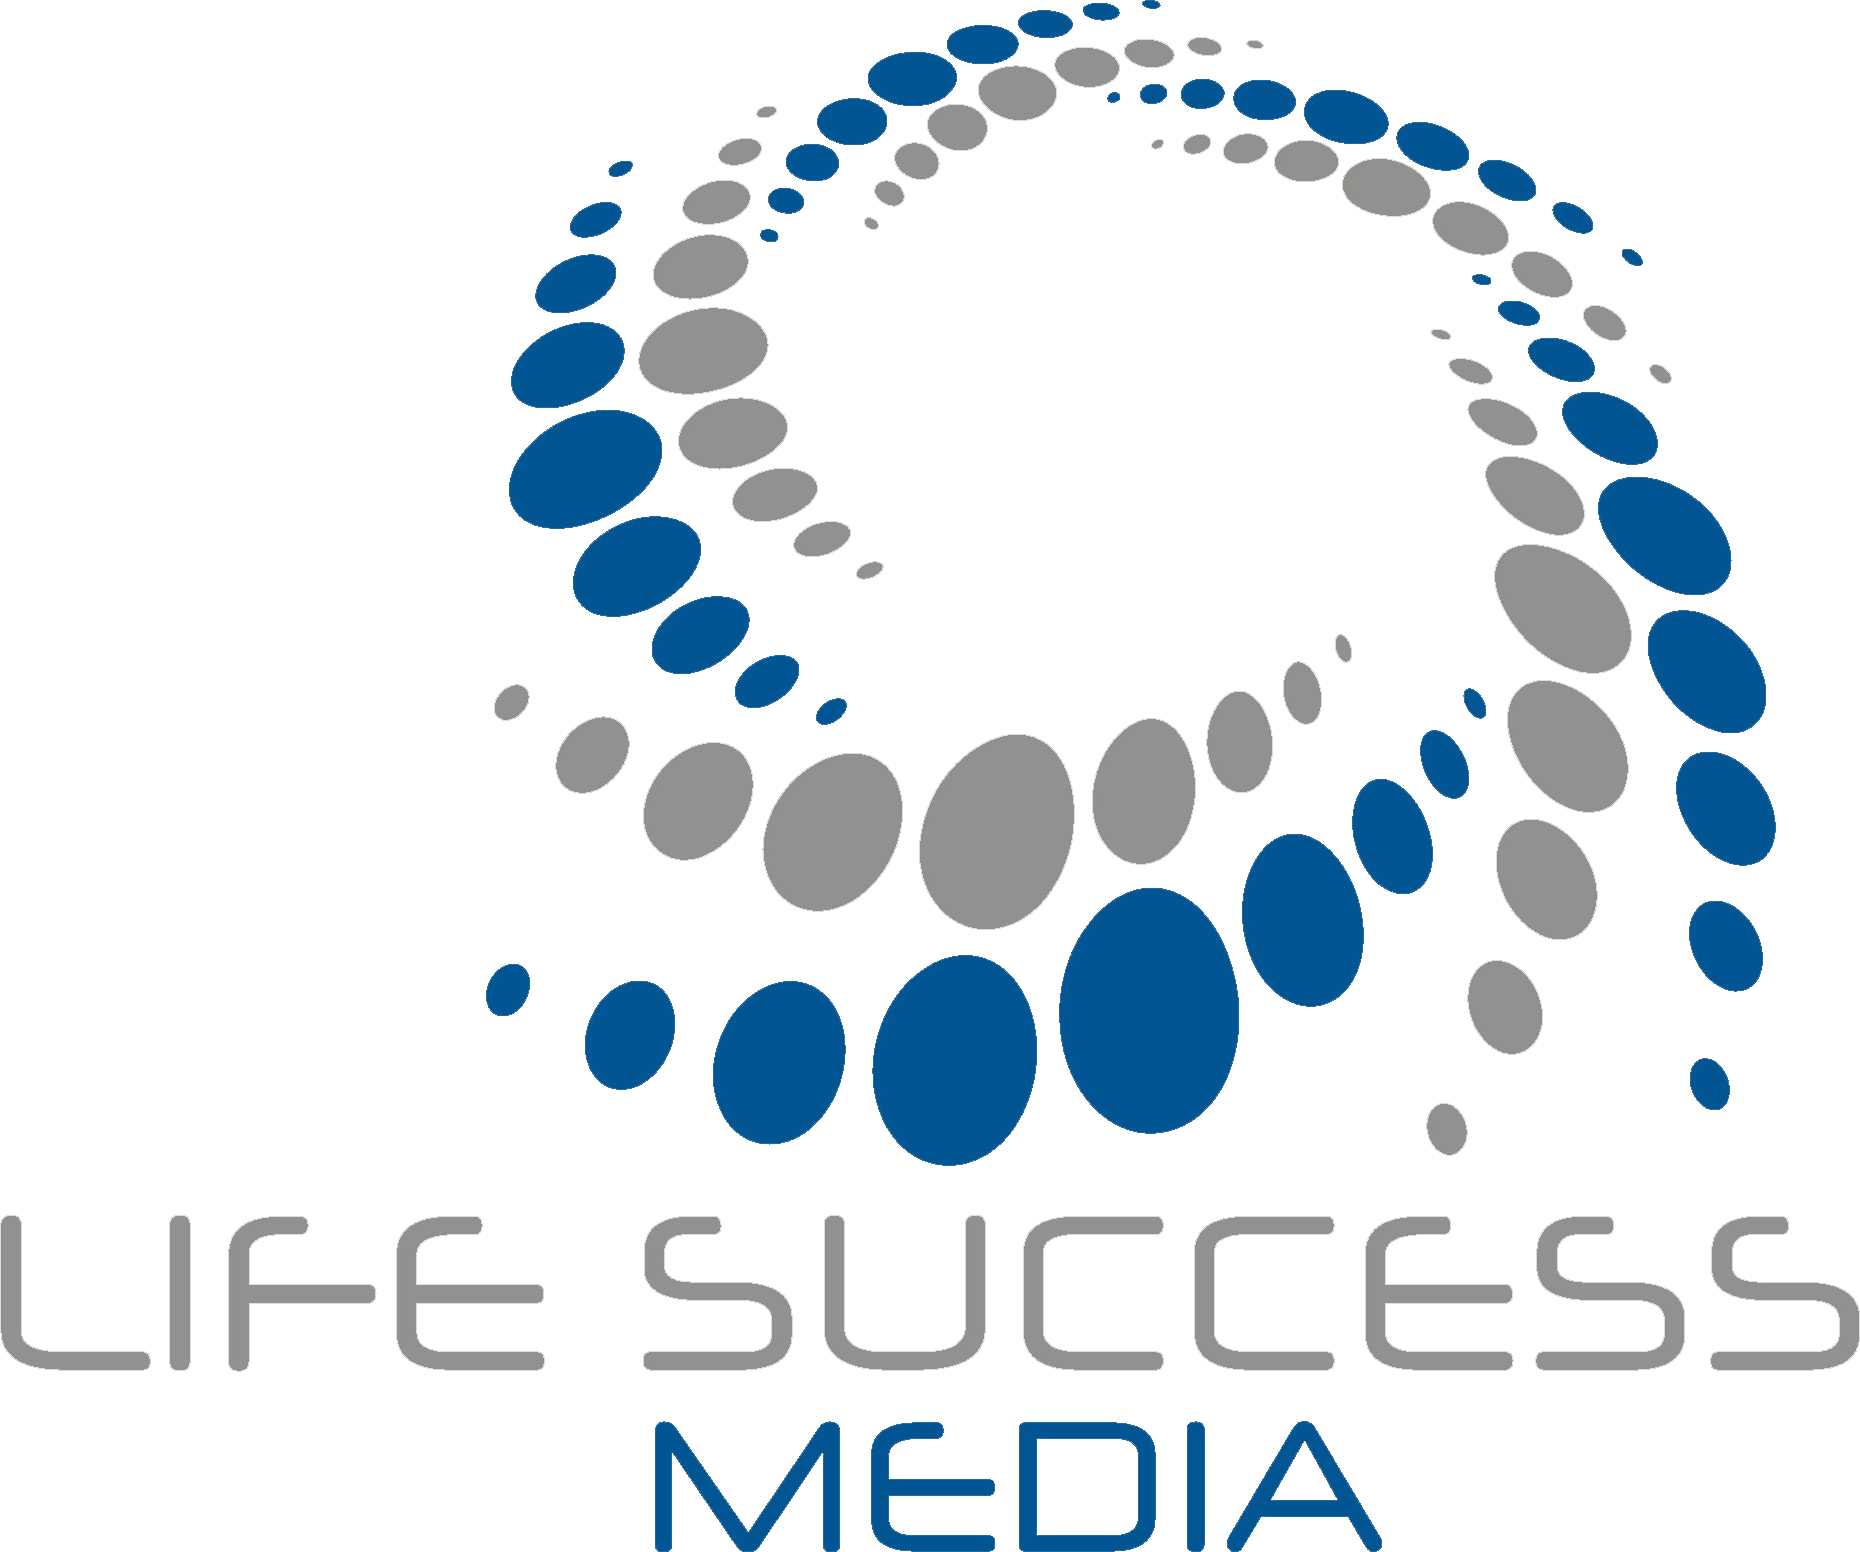 Life Success Media - Magazin